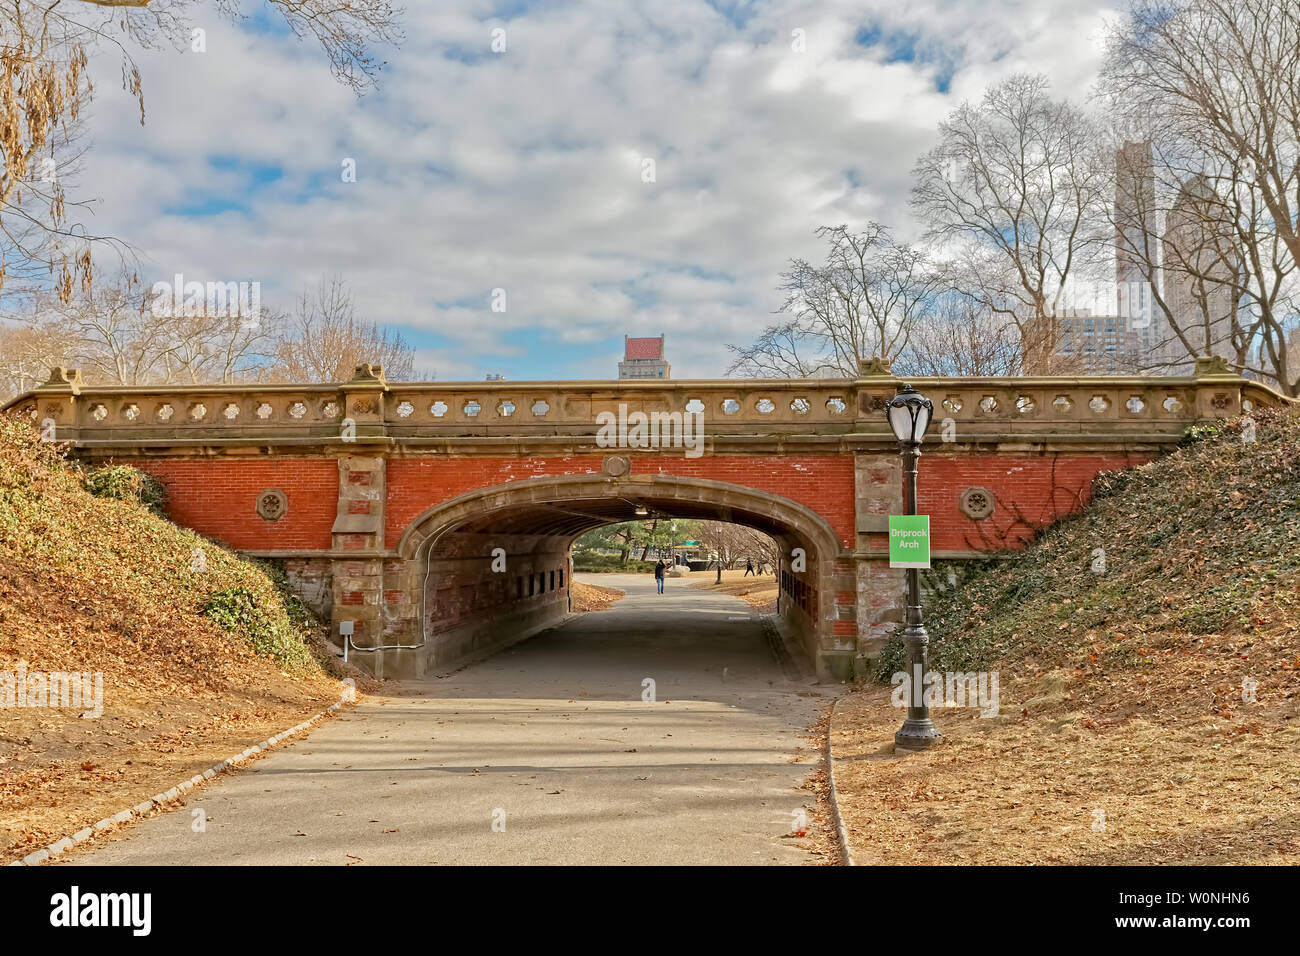 NEW YORK, USA - JANUARY 15, 2018: Red brick Driprock Arch bridge in Central Park winter season. - Stock Image